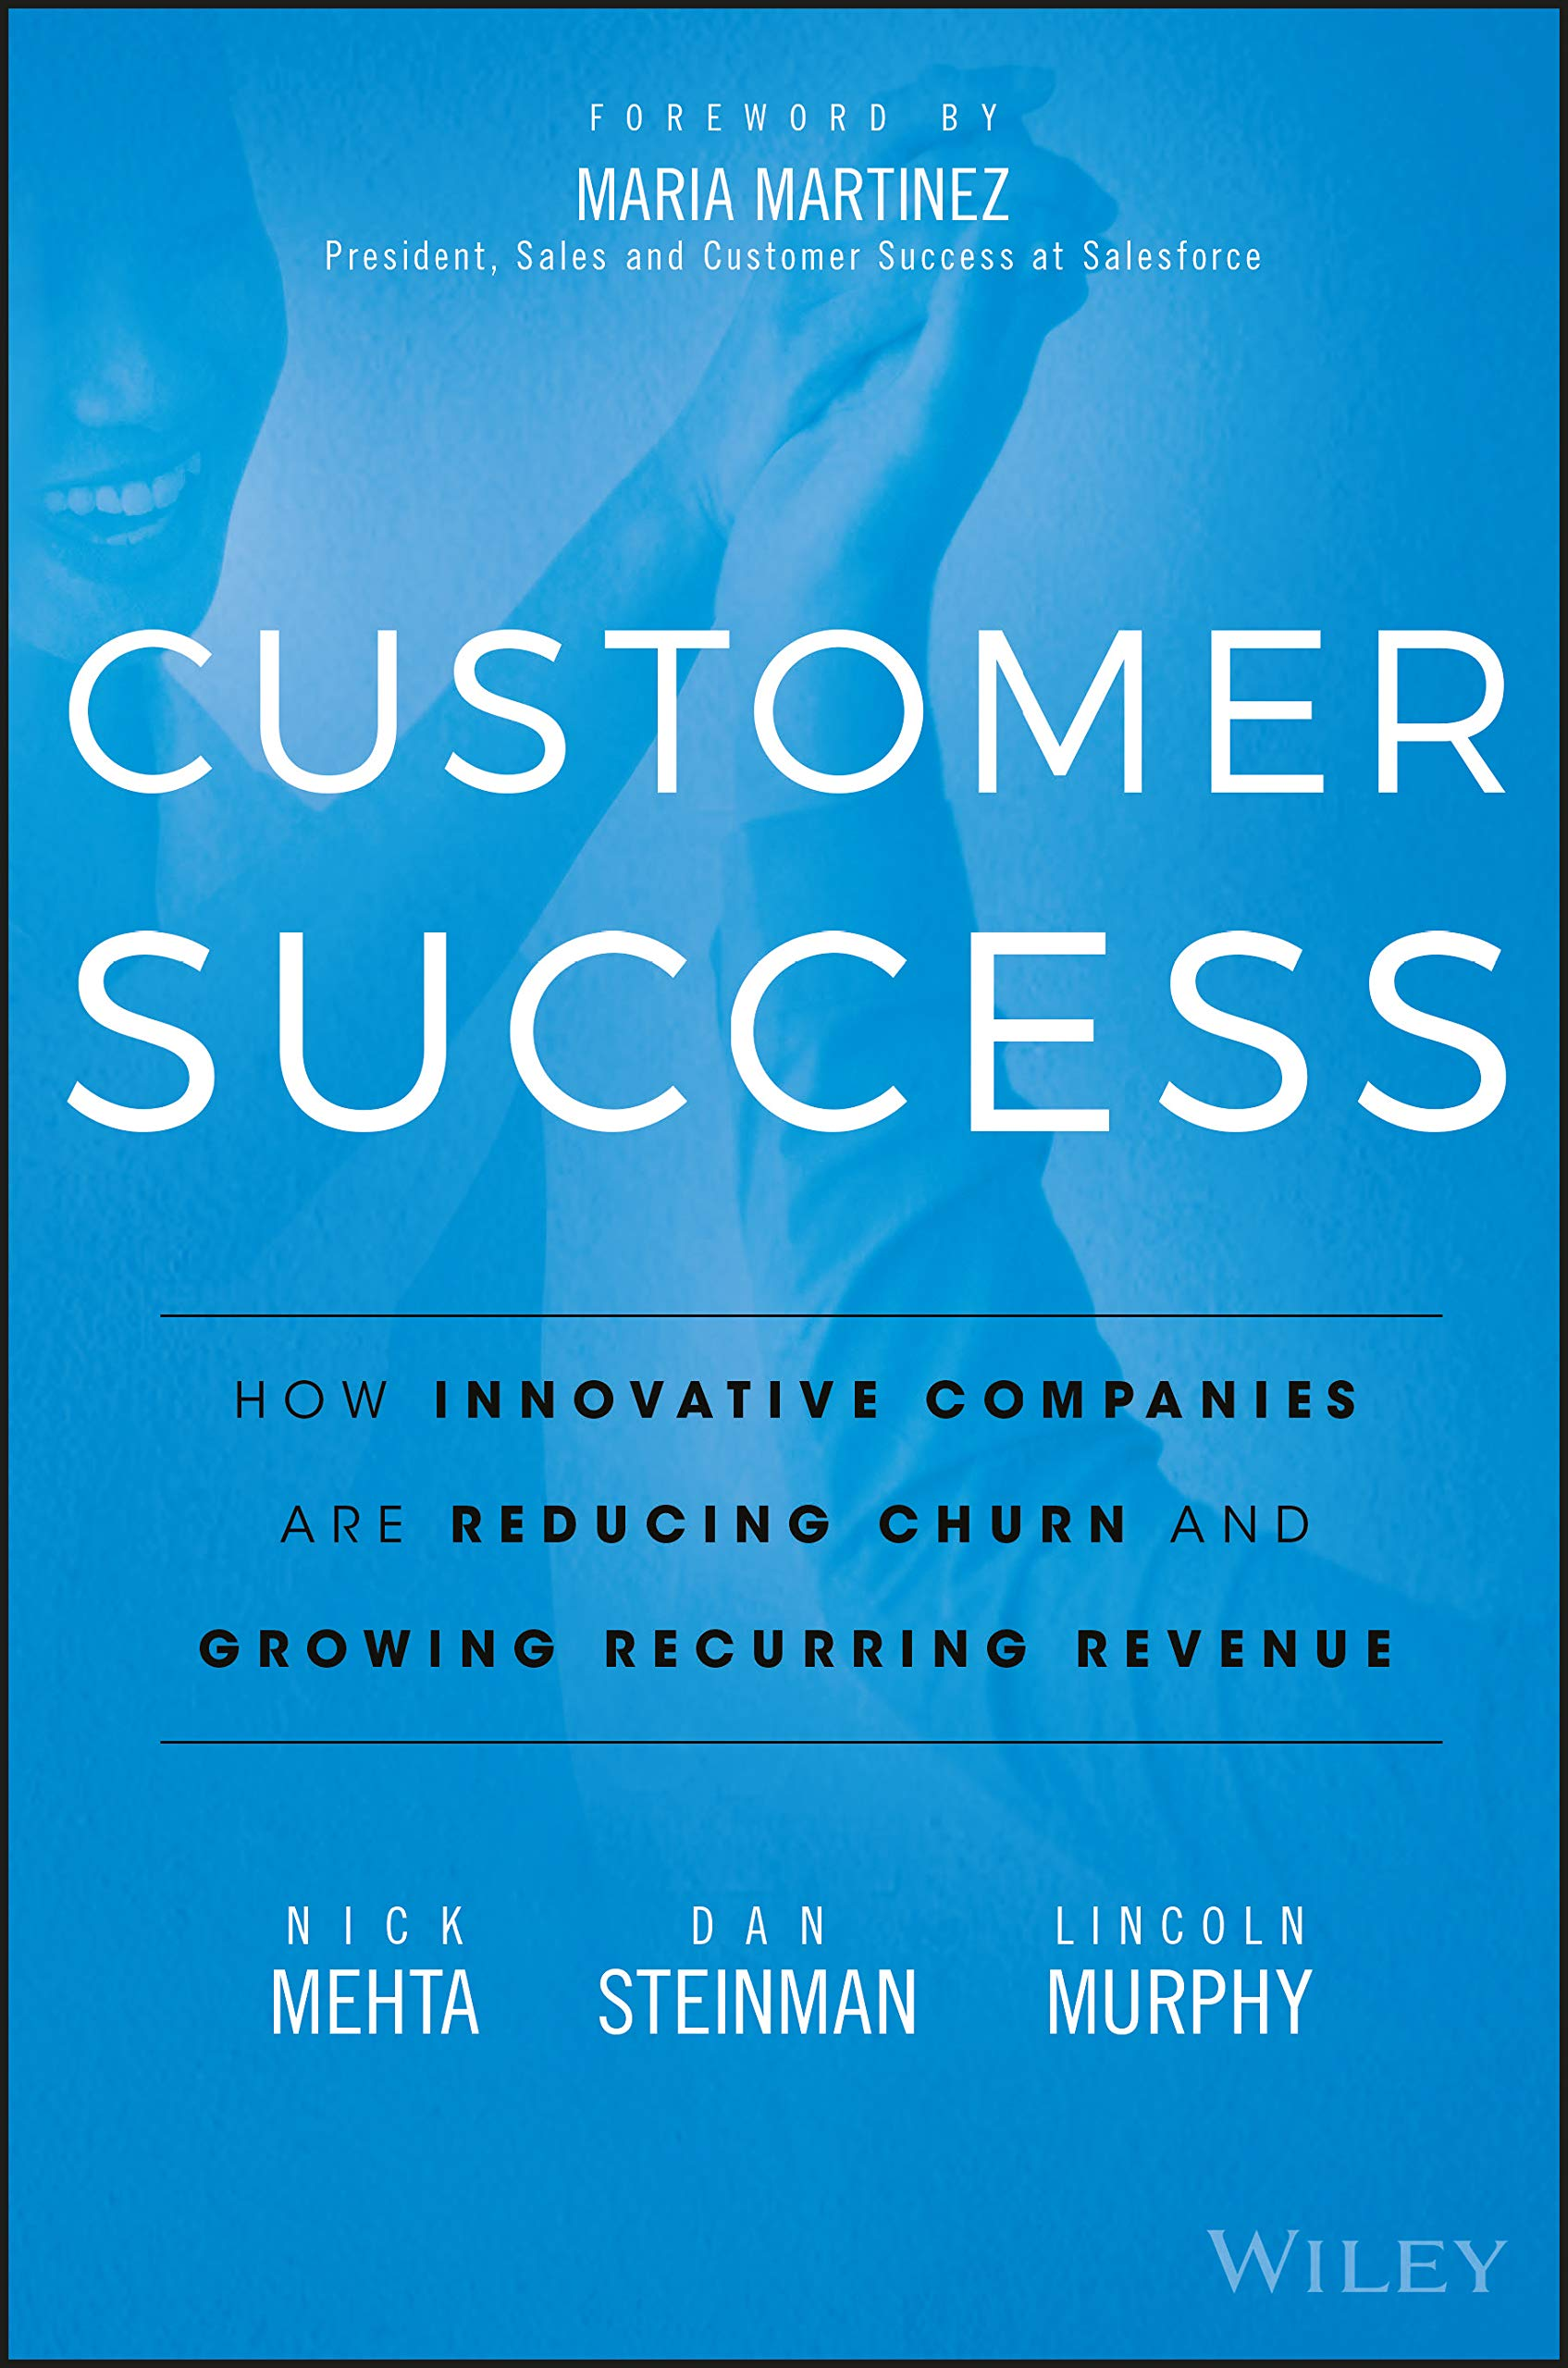 The cover of Customer Success: How Innovative Companies Are Reducing Churn and Growing Recurring Revenue